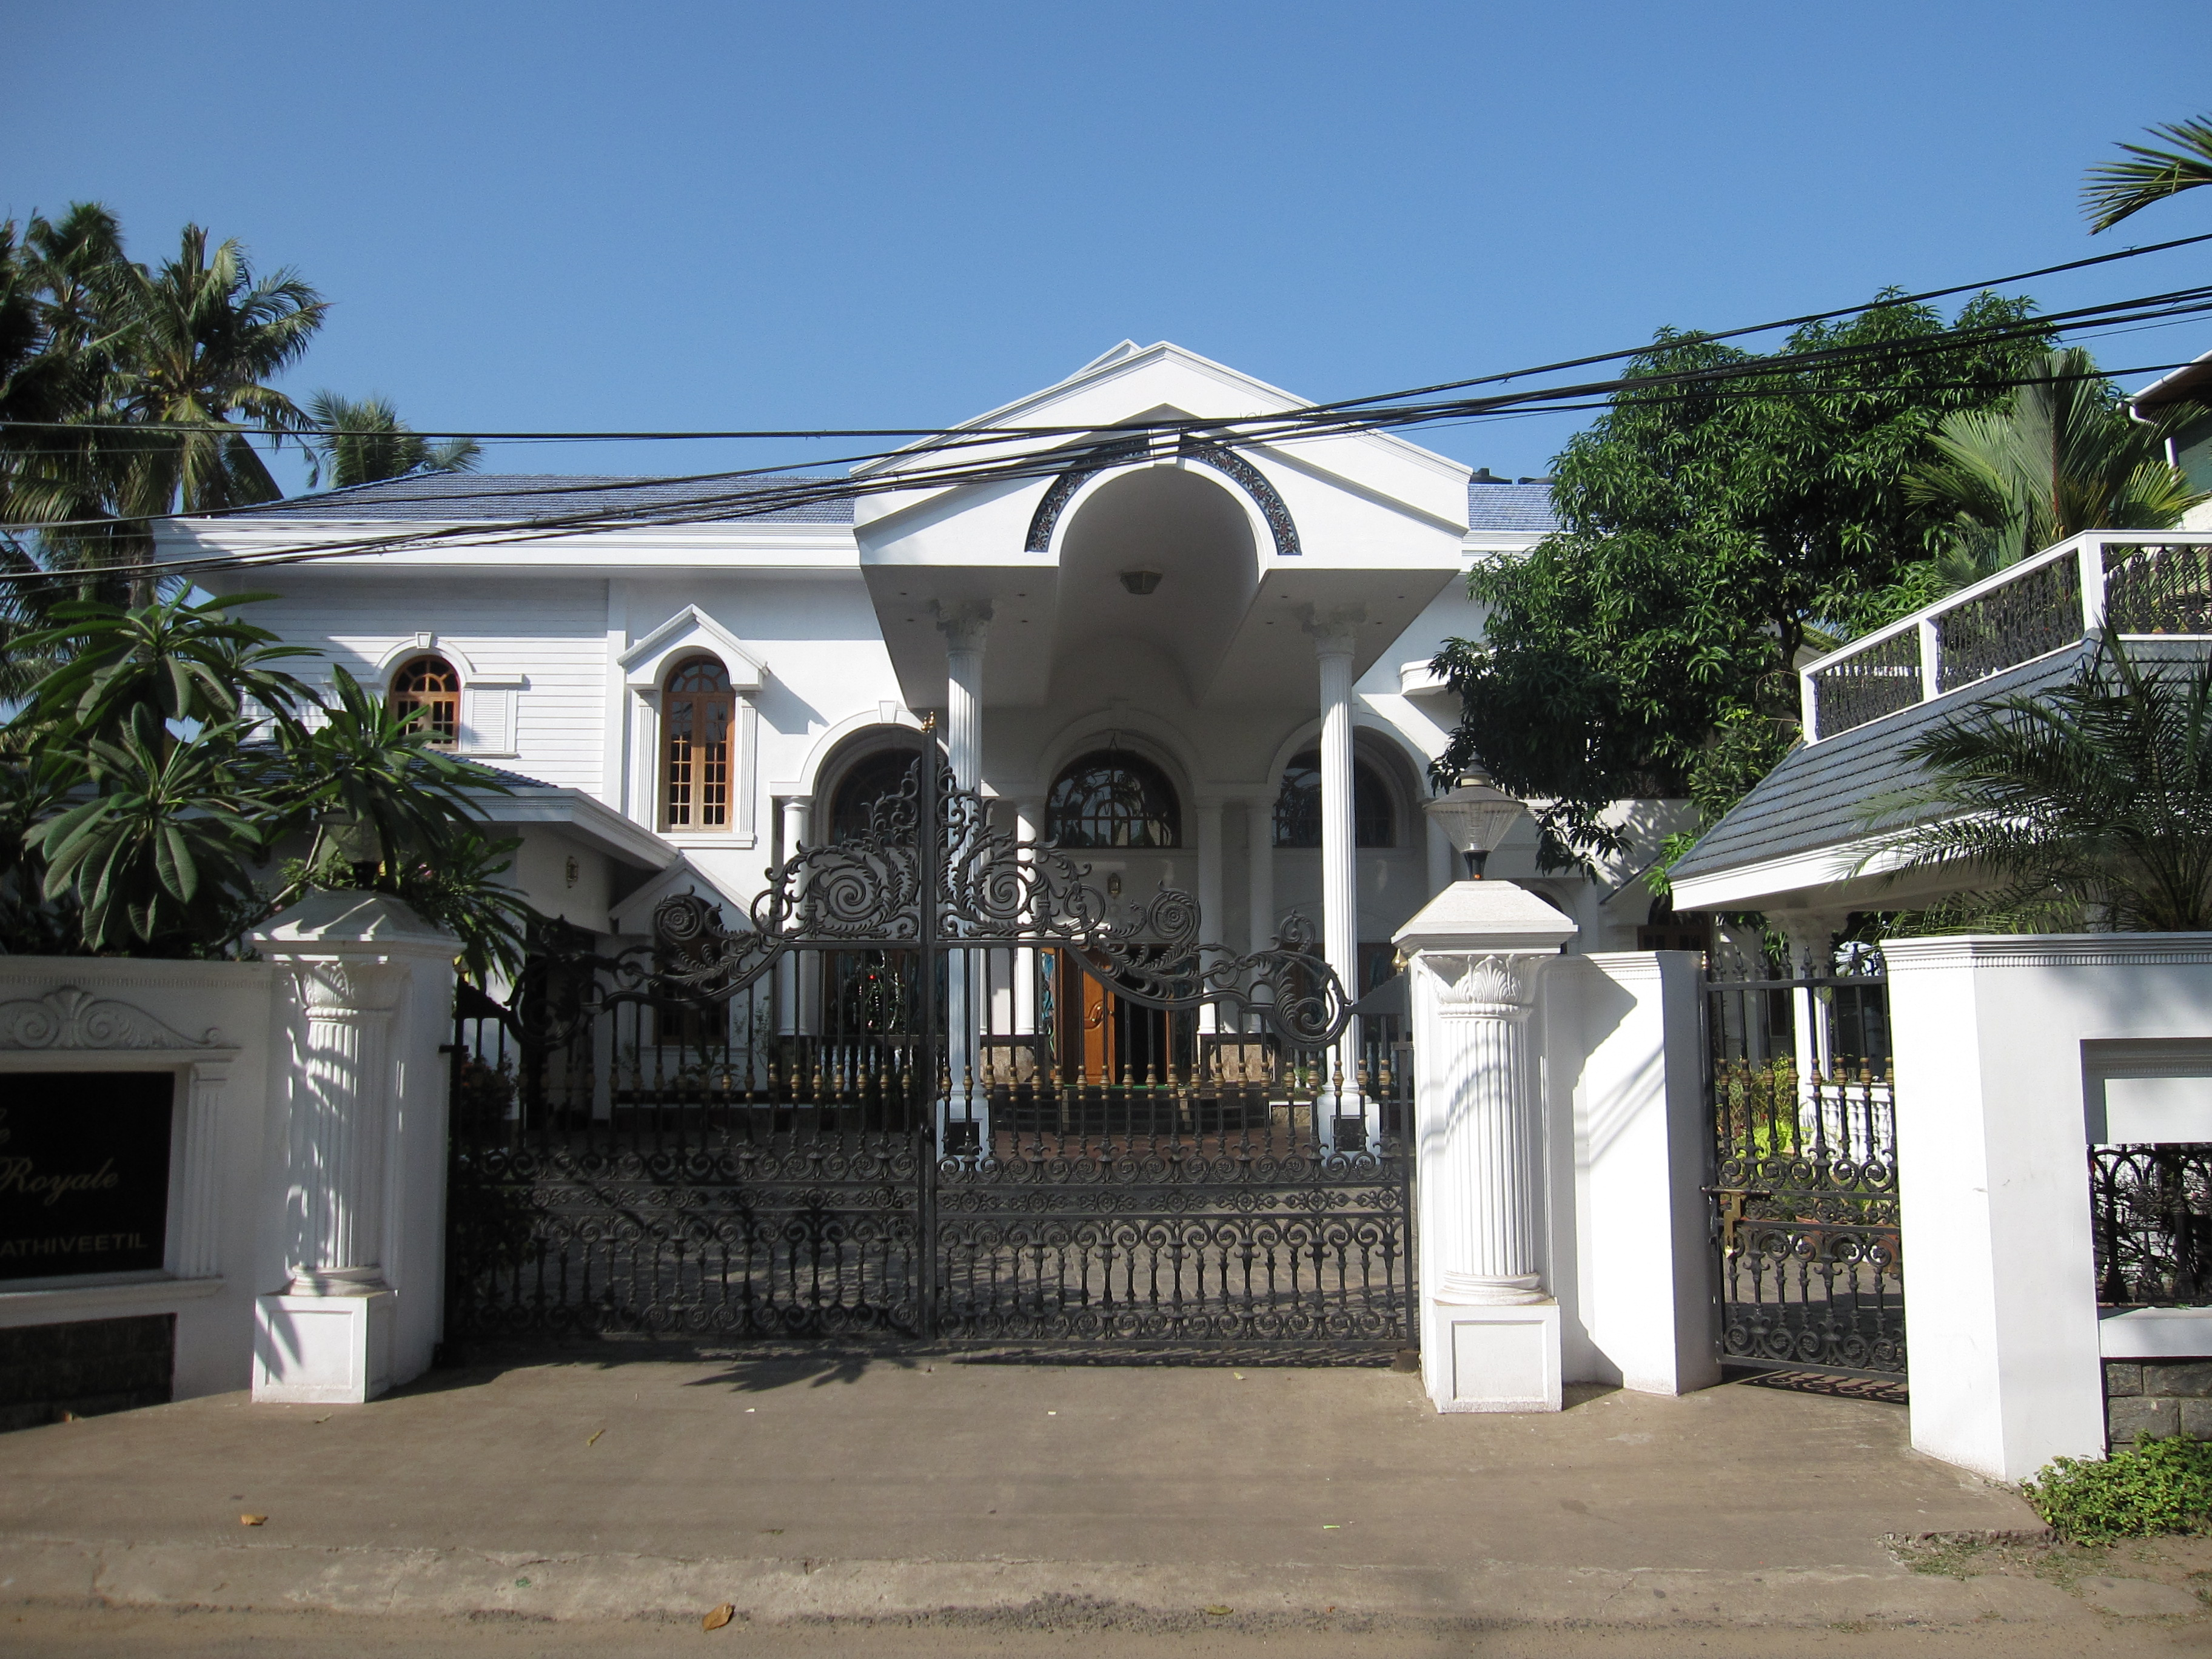 House-stay in Cochin